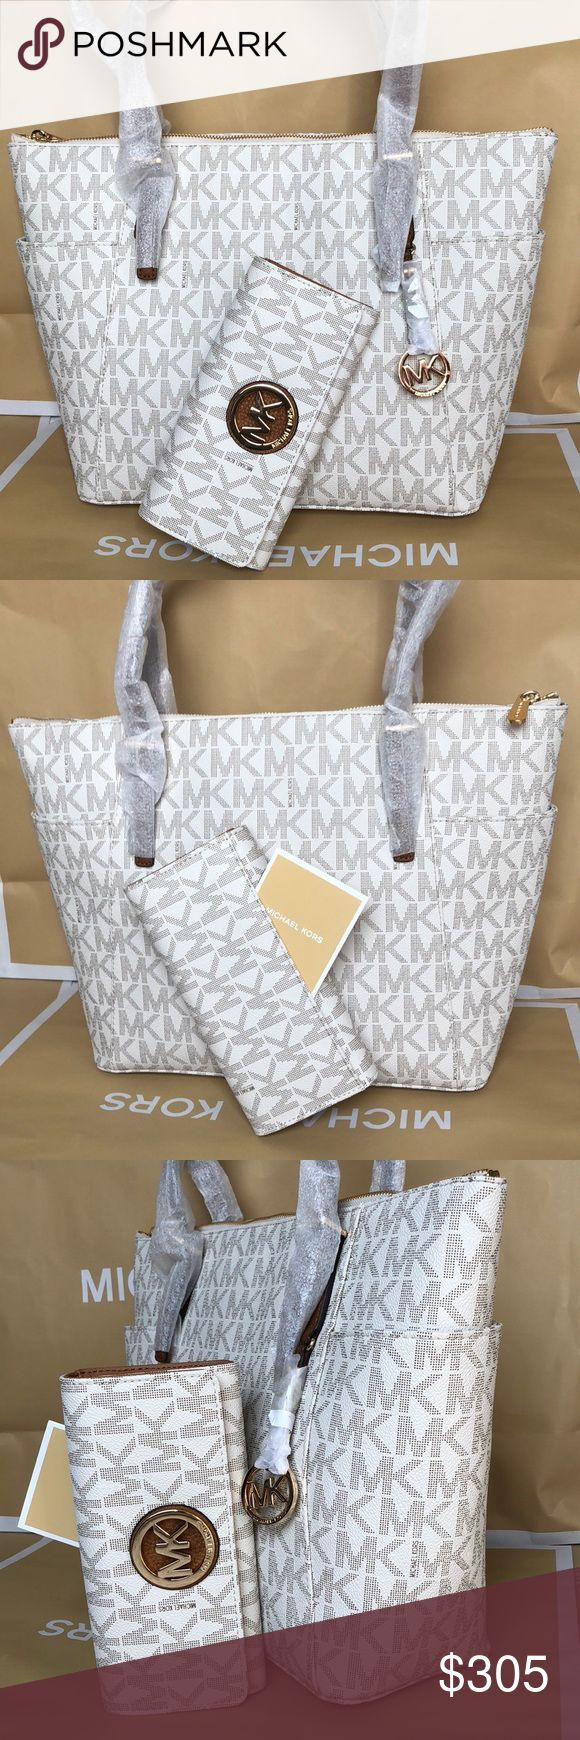 🌴Michael Kors Set🌴 100% Authentic Michael Kors Tote Bag and Wallet, brand new with tag!😍😍😍color Vanilla/Brown Michael Kors Bags Totes